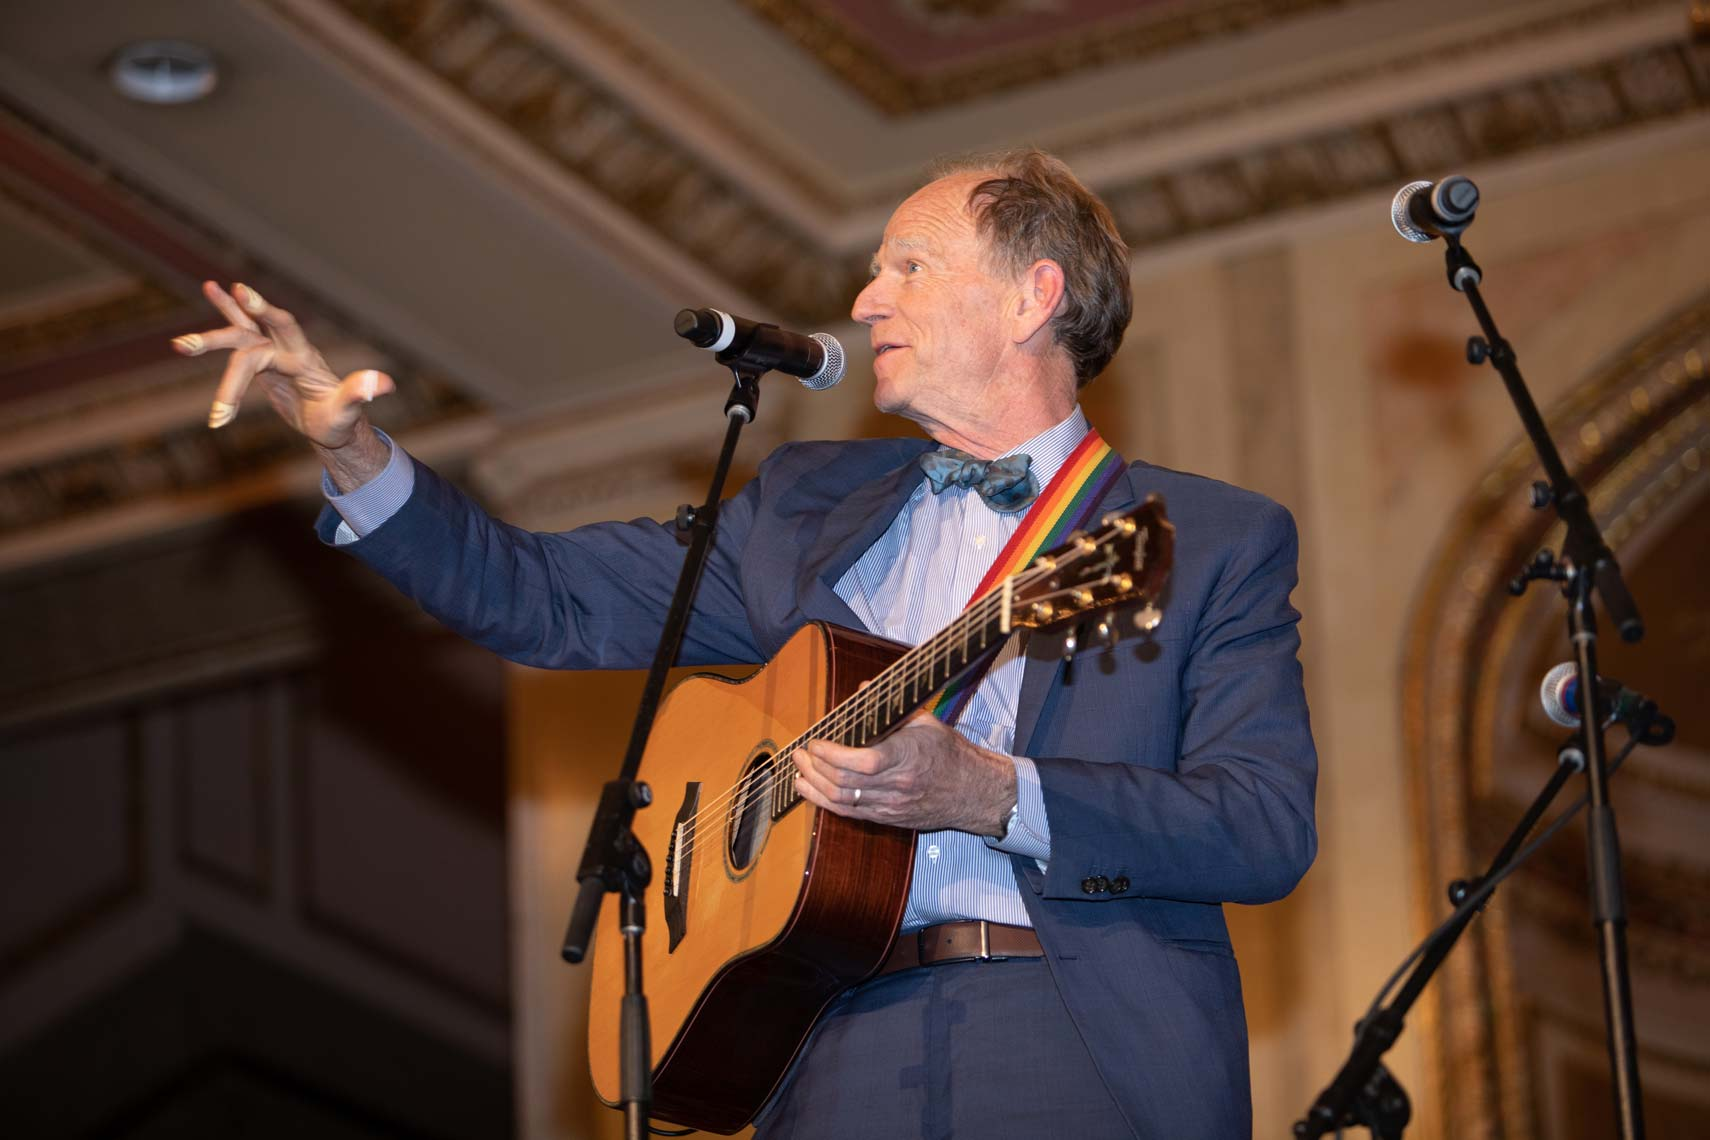 Livingston Taylor perfroming at the Wang Theatre gala